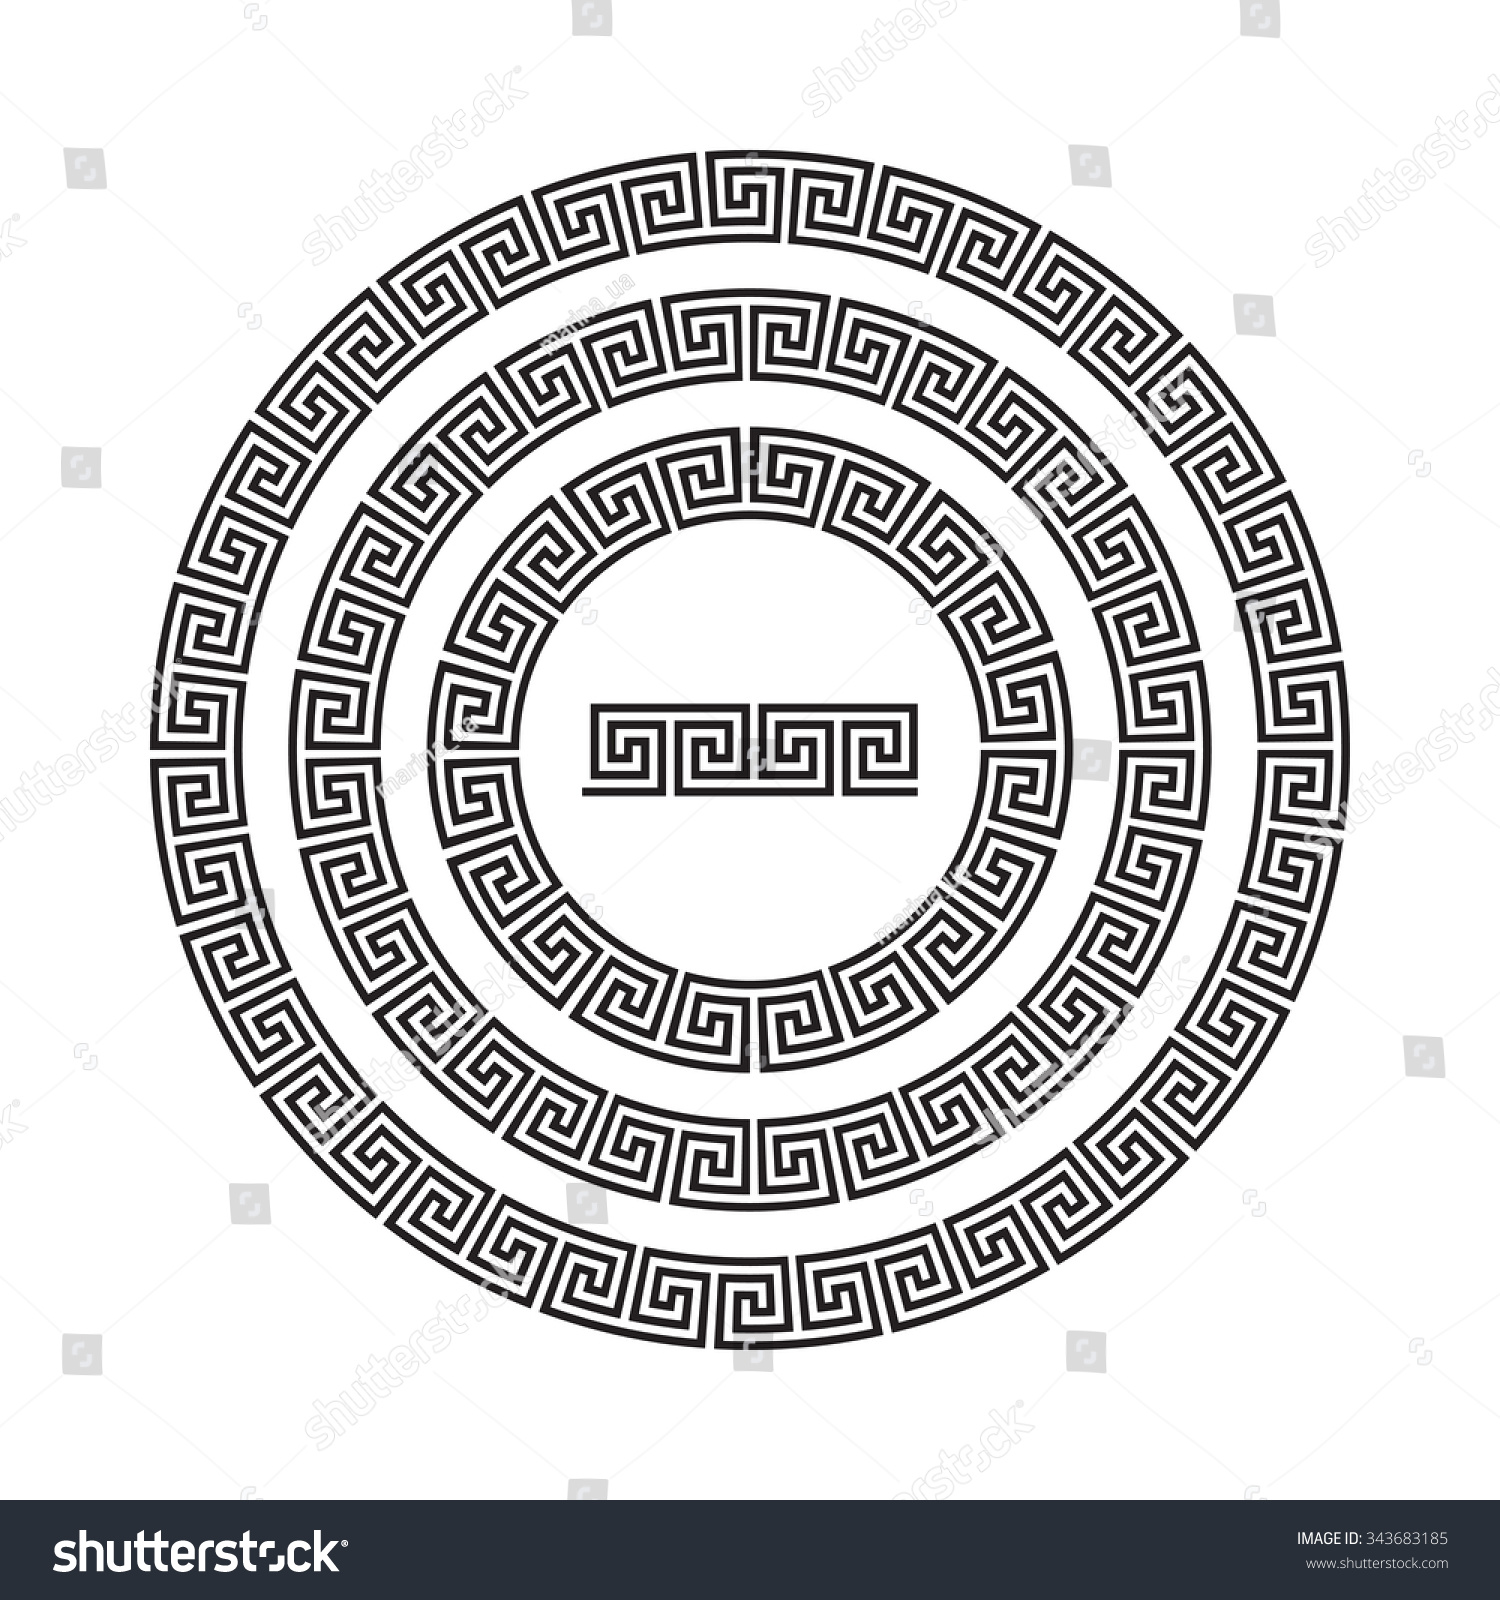 Circle ornament meander round frame rosette stock vector 343683185 circle ornament meander round frame rosette of ancient elements greek national antique round biocorpaavc Image collections